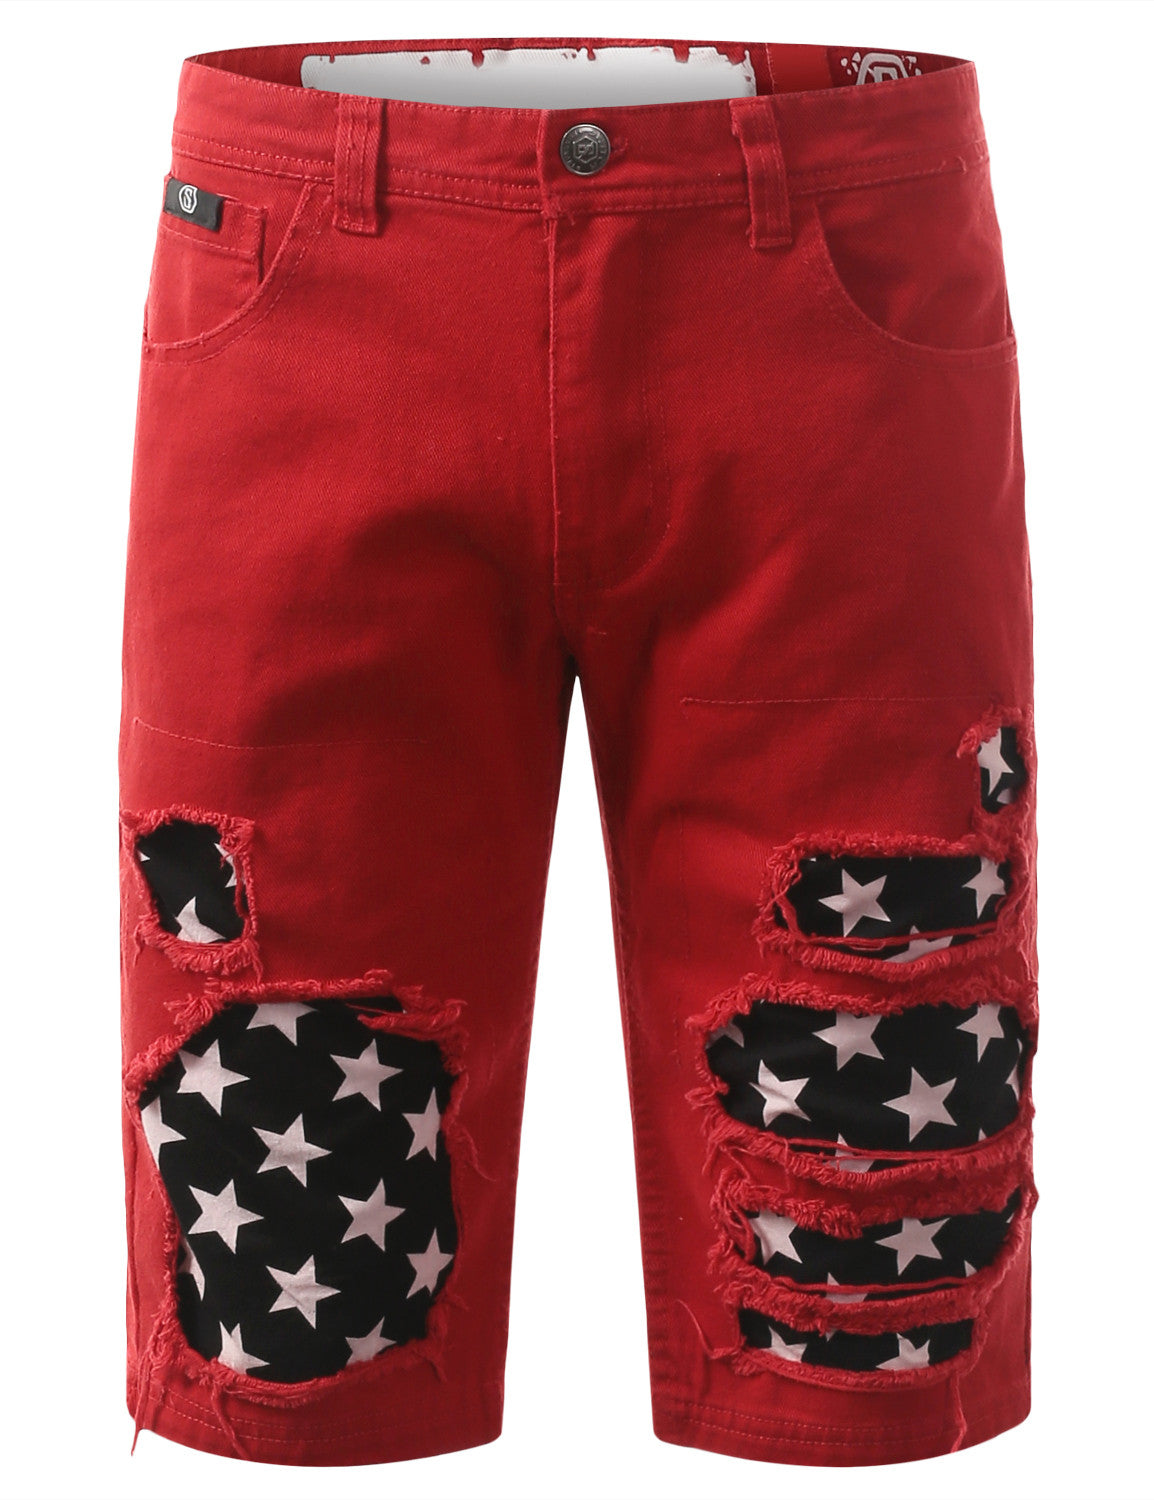 Rip Star Patch Denim Shorts - URBANCREWS - 2